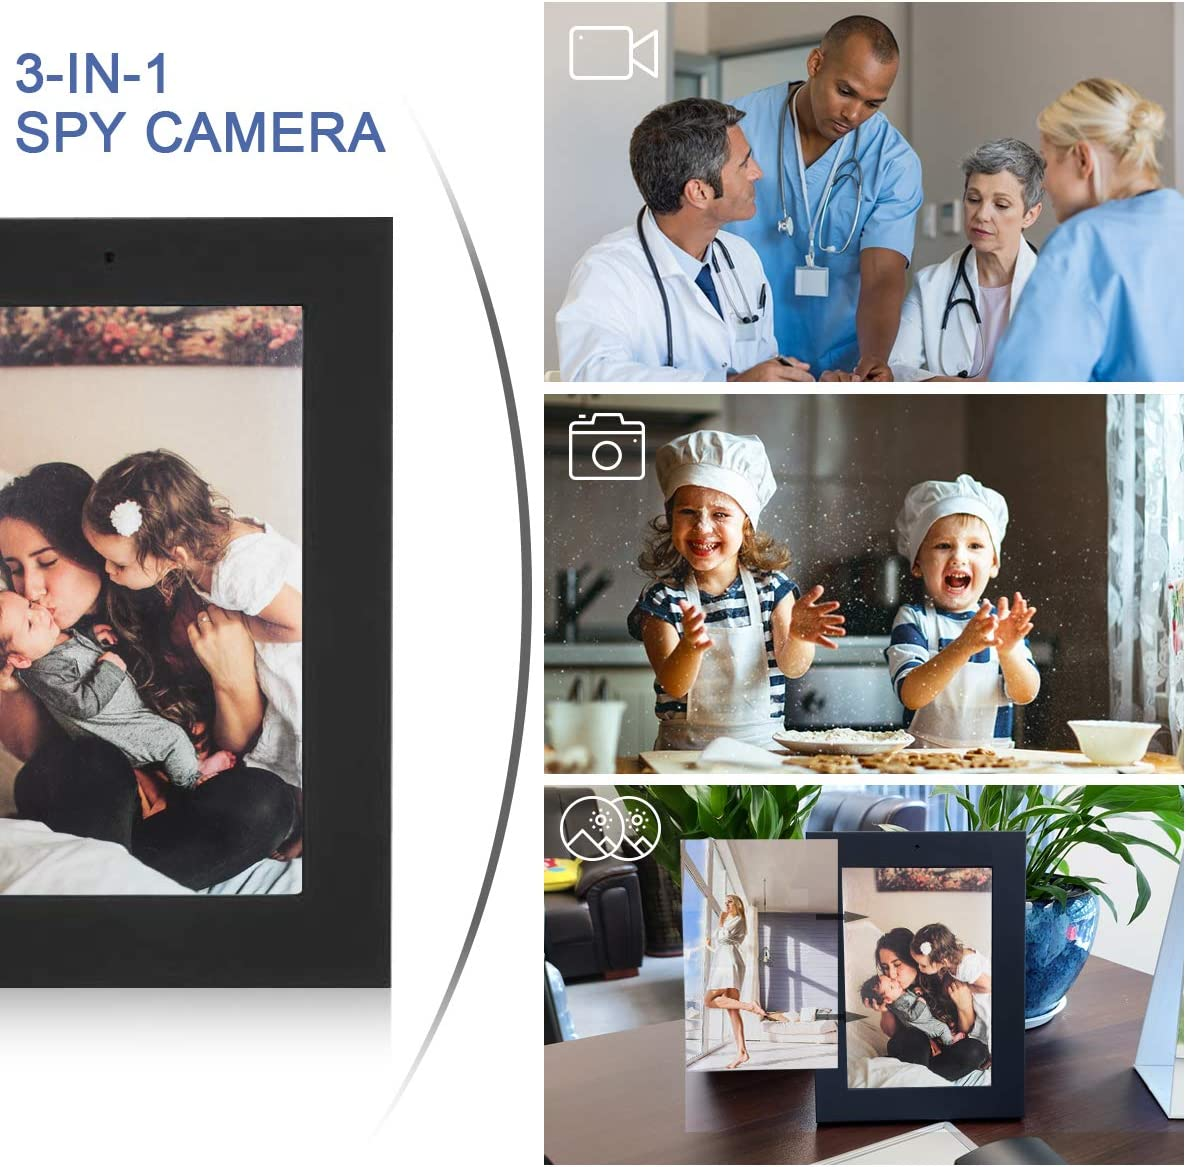 No WiFi Needed Taking Picture Mini Camera FHD 960P Picture Frame Shaped Nanny Security Camera for Home Office Recording Video